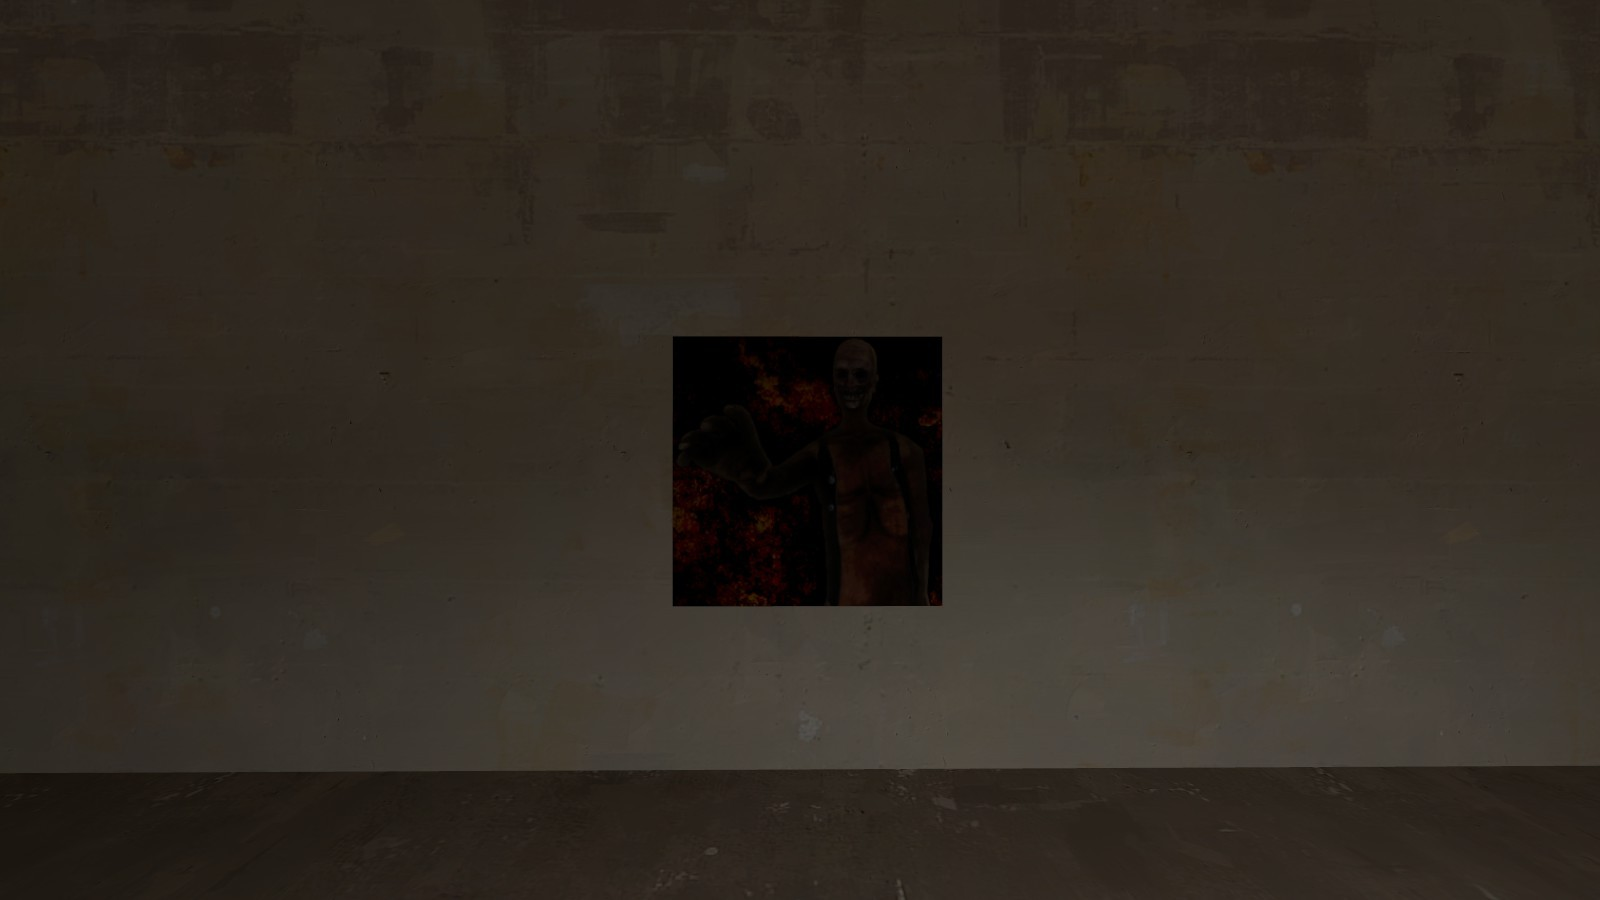 If You Say So >> Scary SCP-106 spray (Team Fortress 2 > Sprays > Other/Misc) - GAMEBANANA